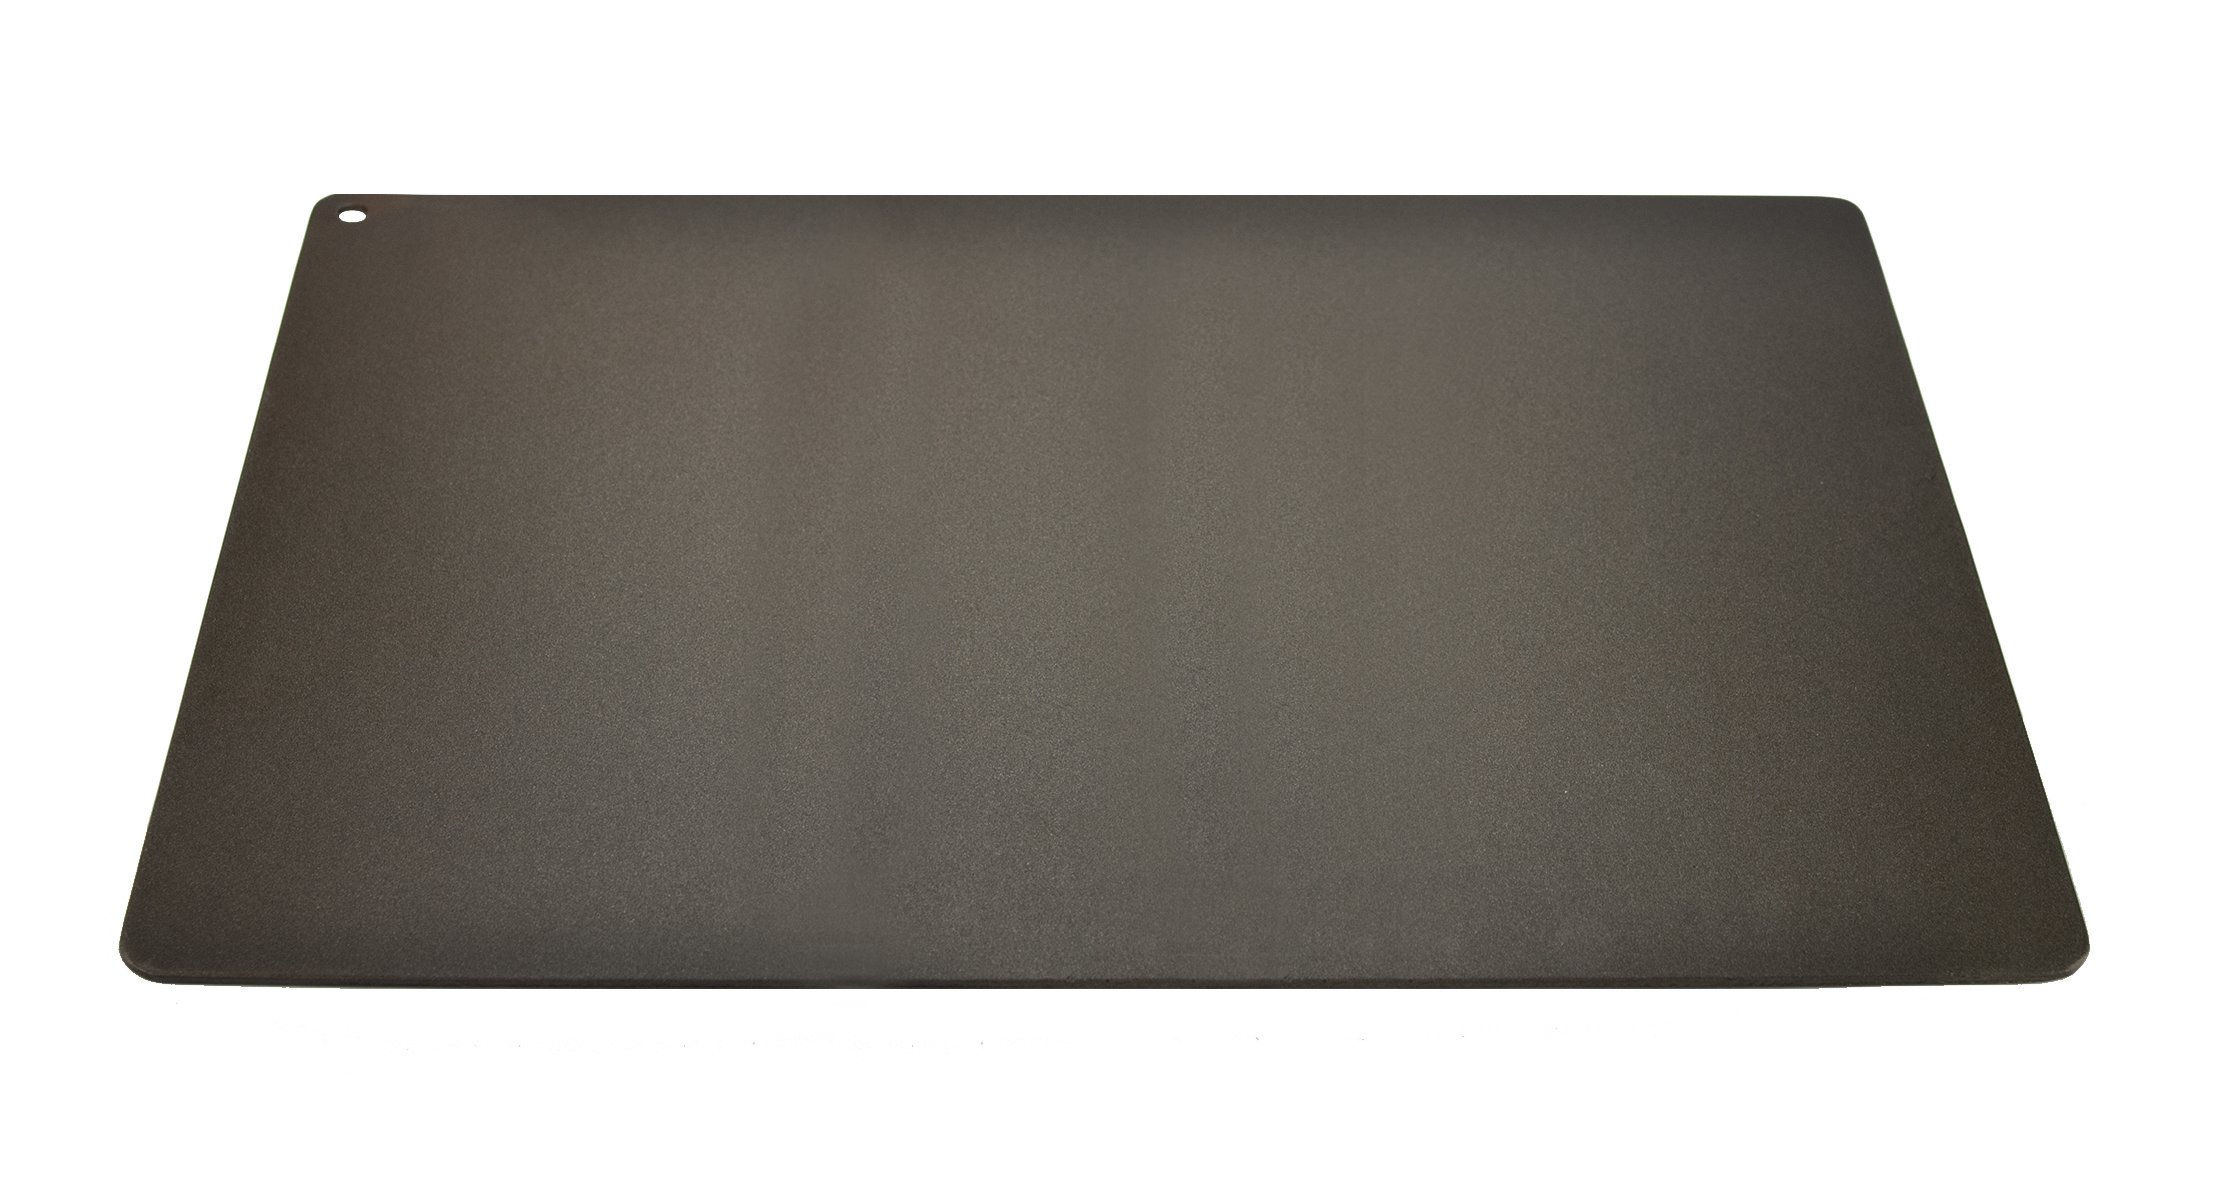 Pizzacraft PC0313 Rectangular Steel Baking Plate for Oven or BBQ Grill, 22'' x 14'' by Pizzacraft